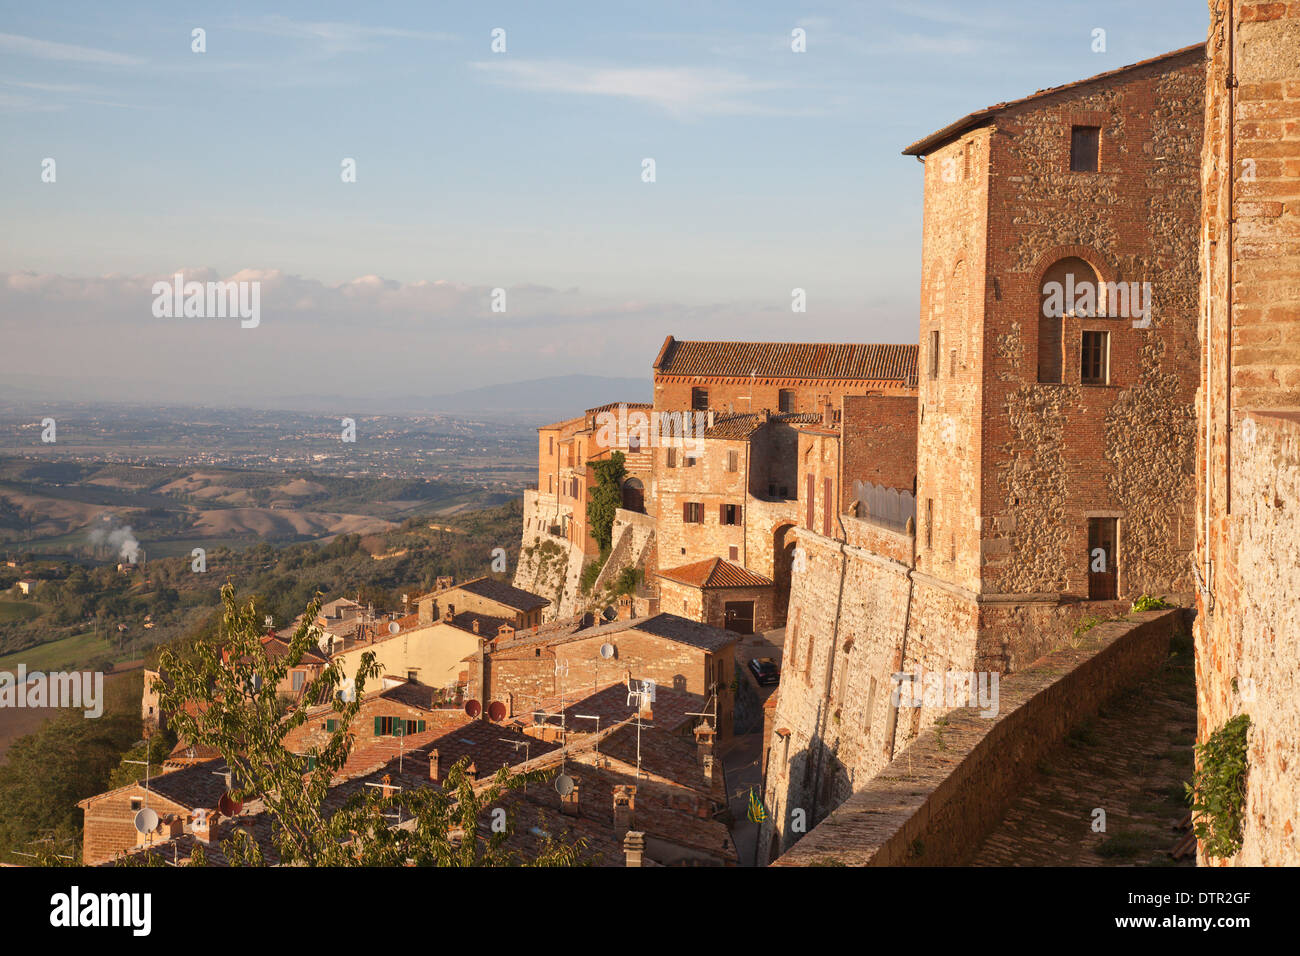 Montepulciano, an old hill town in the Province of Siena, Southern Tuscany, Italy. Mandatory credit Jo Whitworth - Stock Image